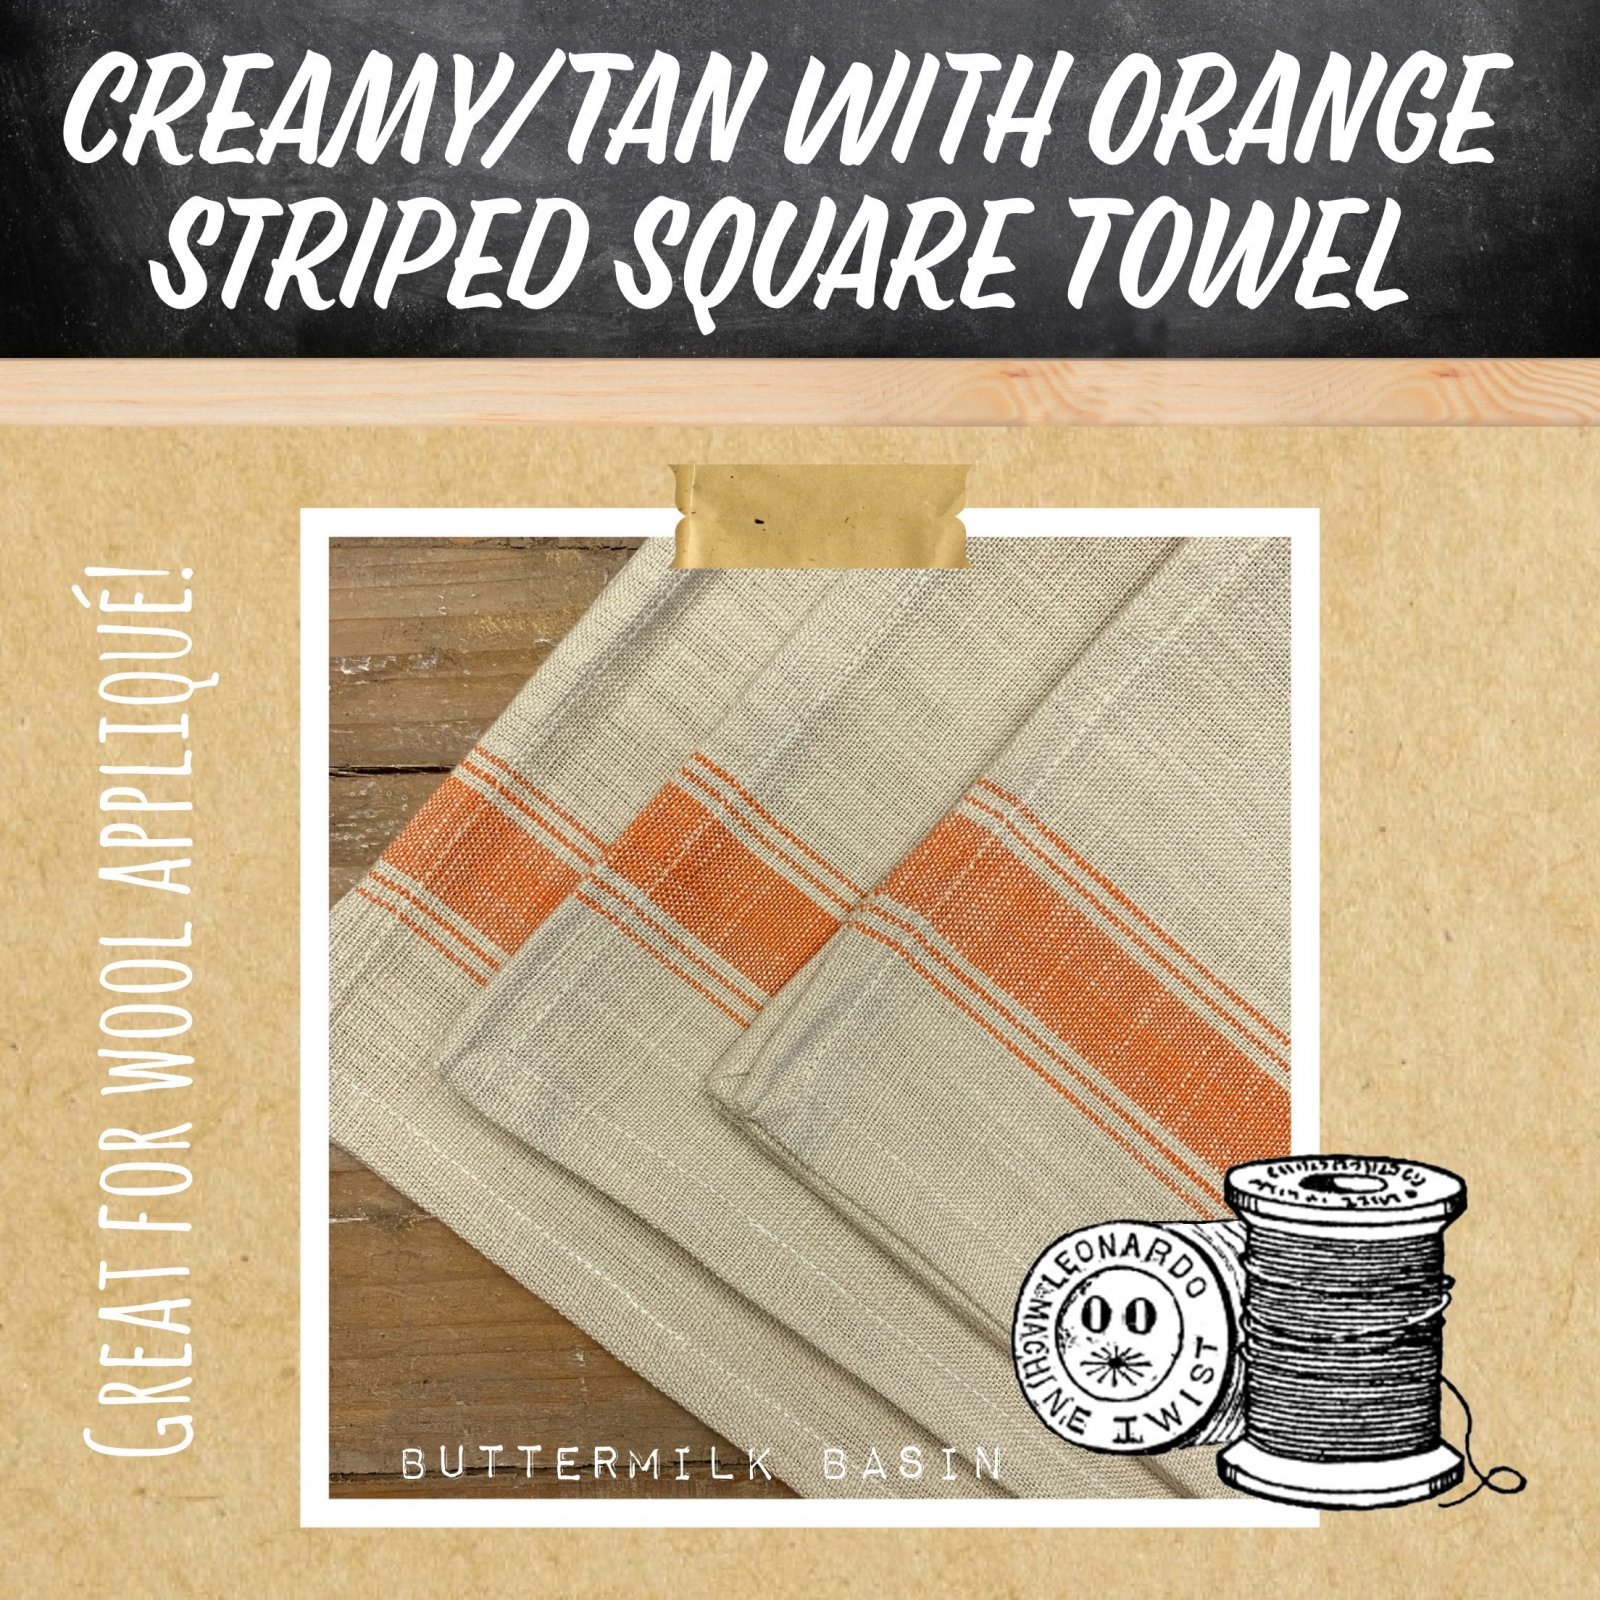 Creamy Tan with Orange Striped Square Toweling